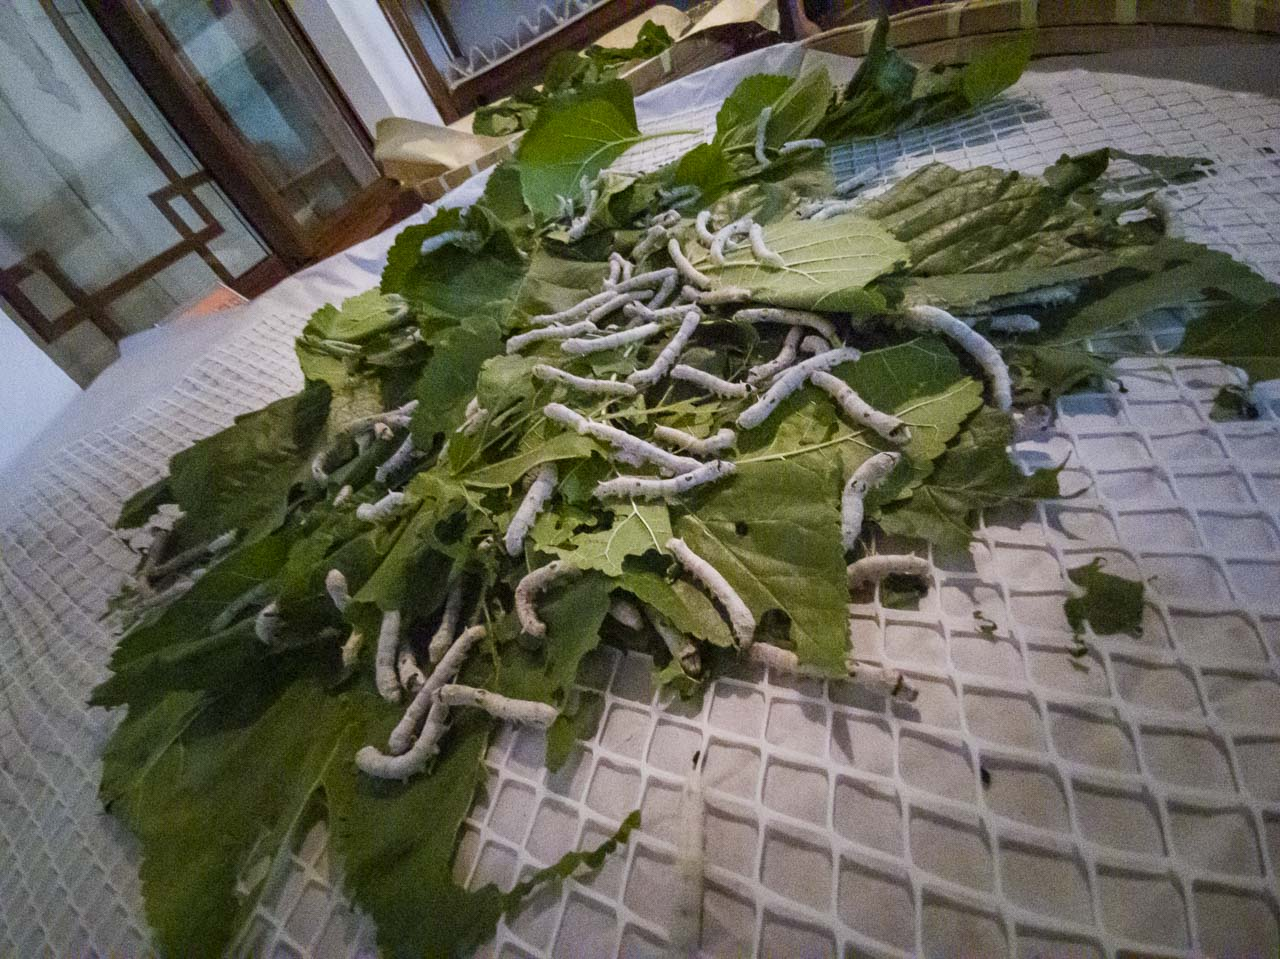 The Silk worms at the Silk Factory in China